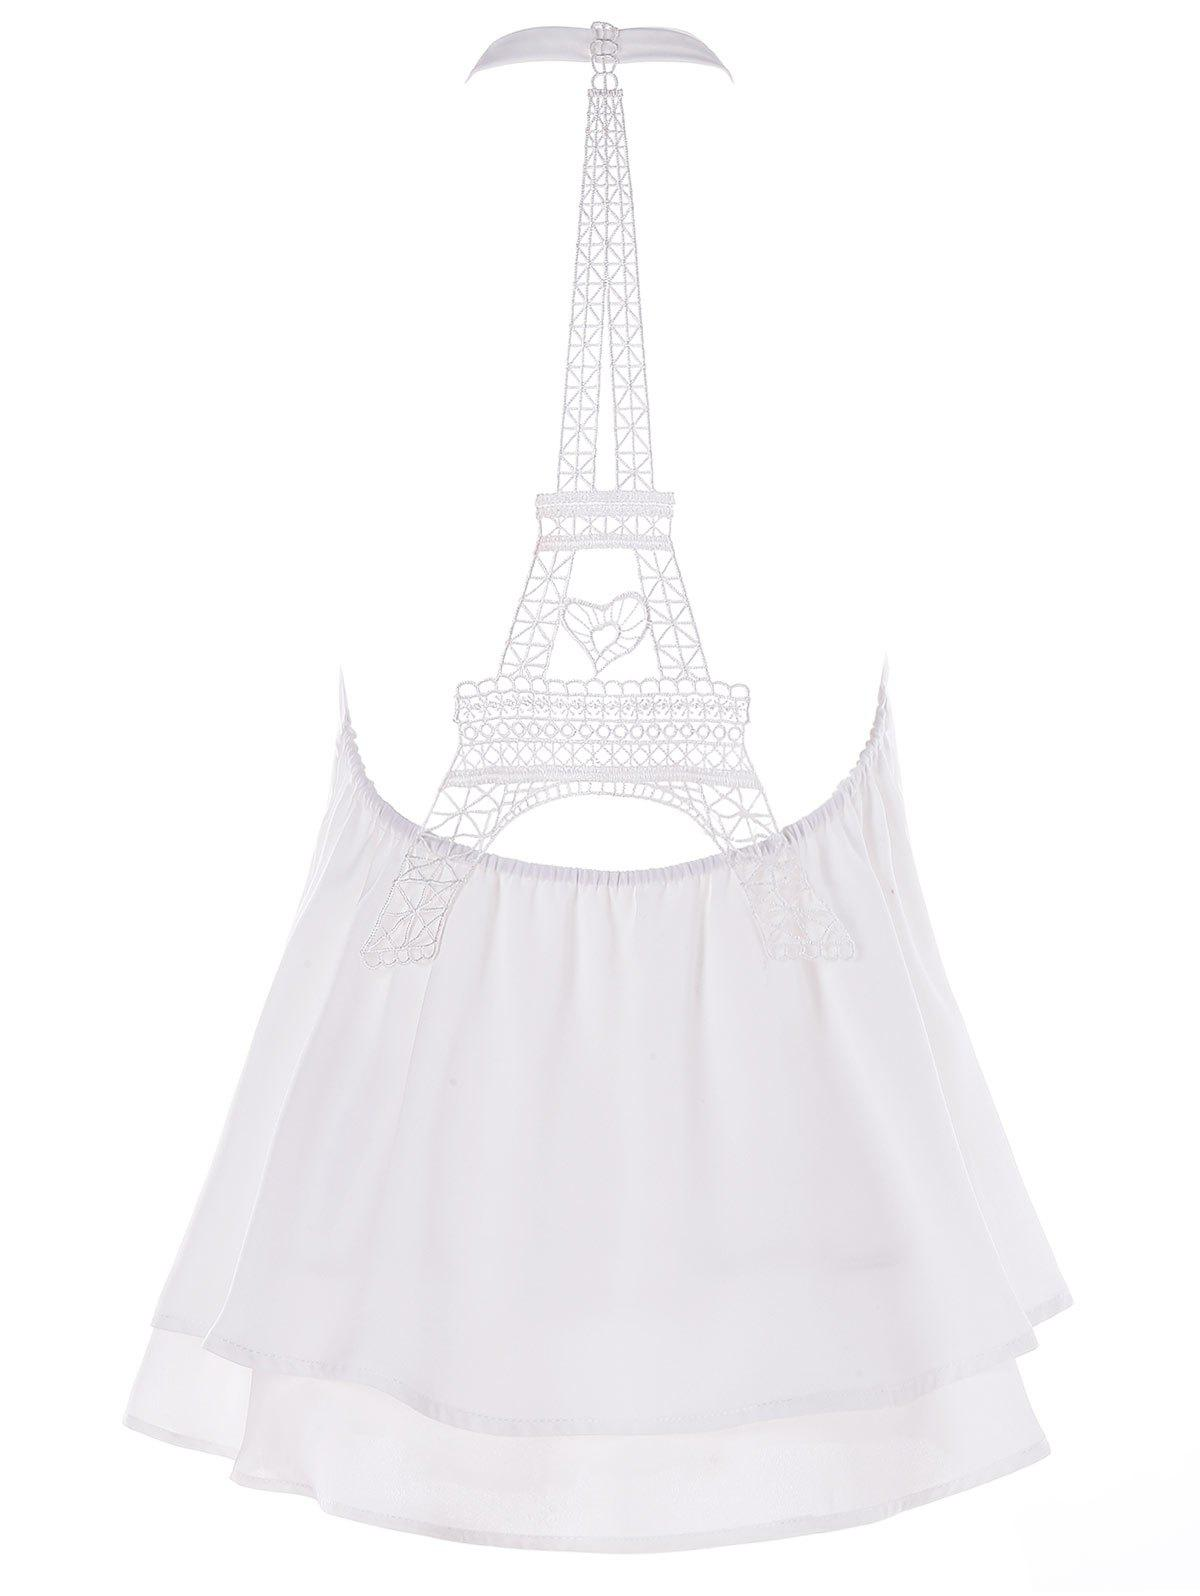 Store Halter Eiffel Tower Hollow Out Swing Tank Top